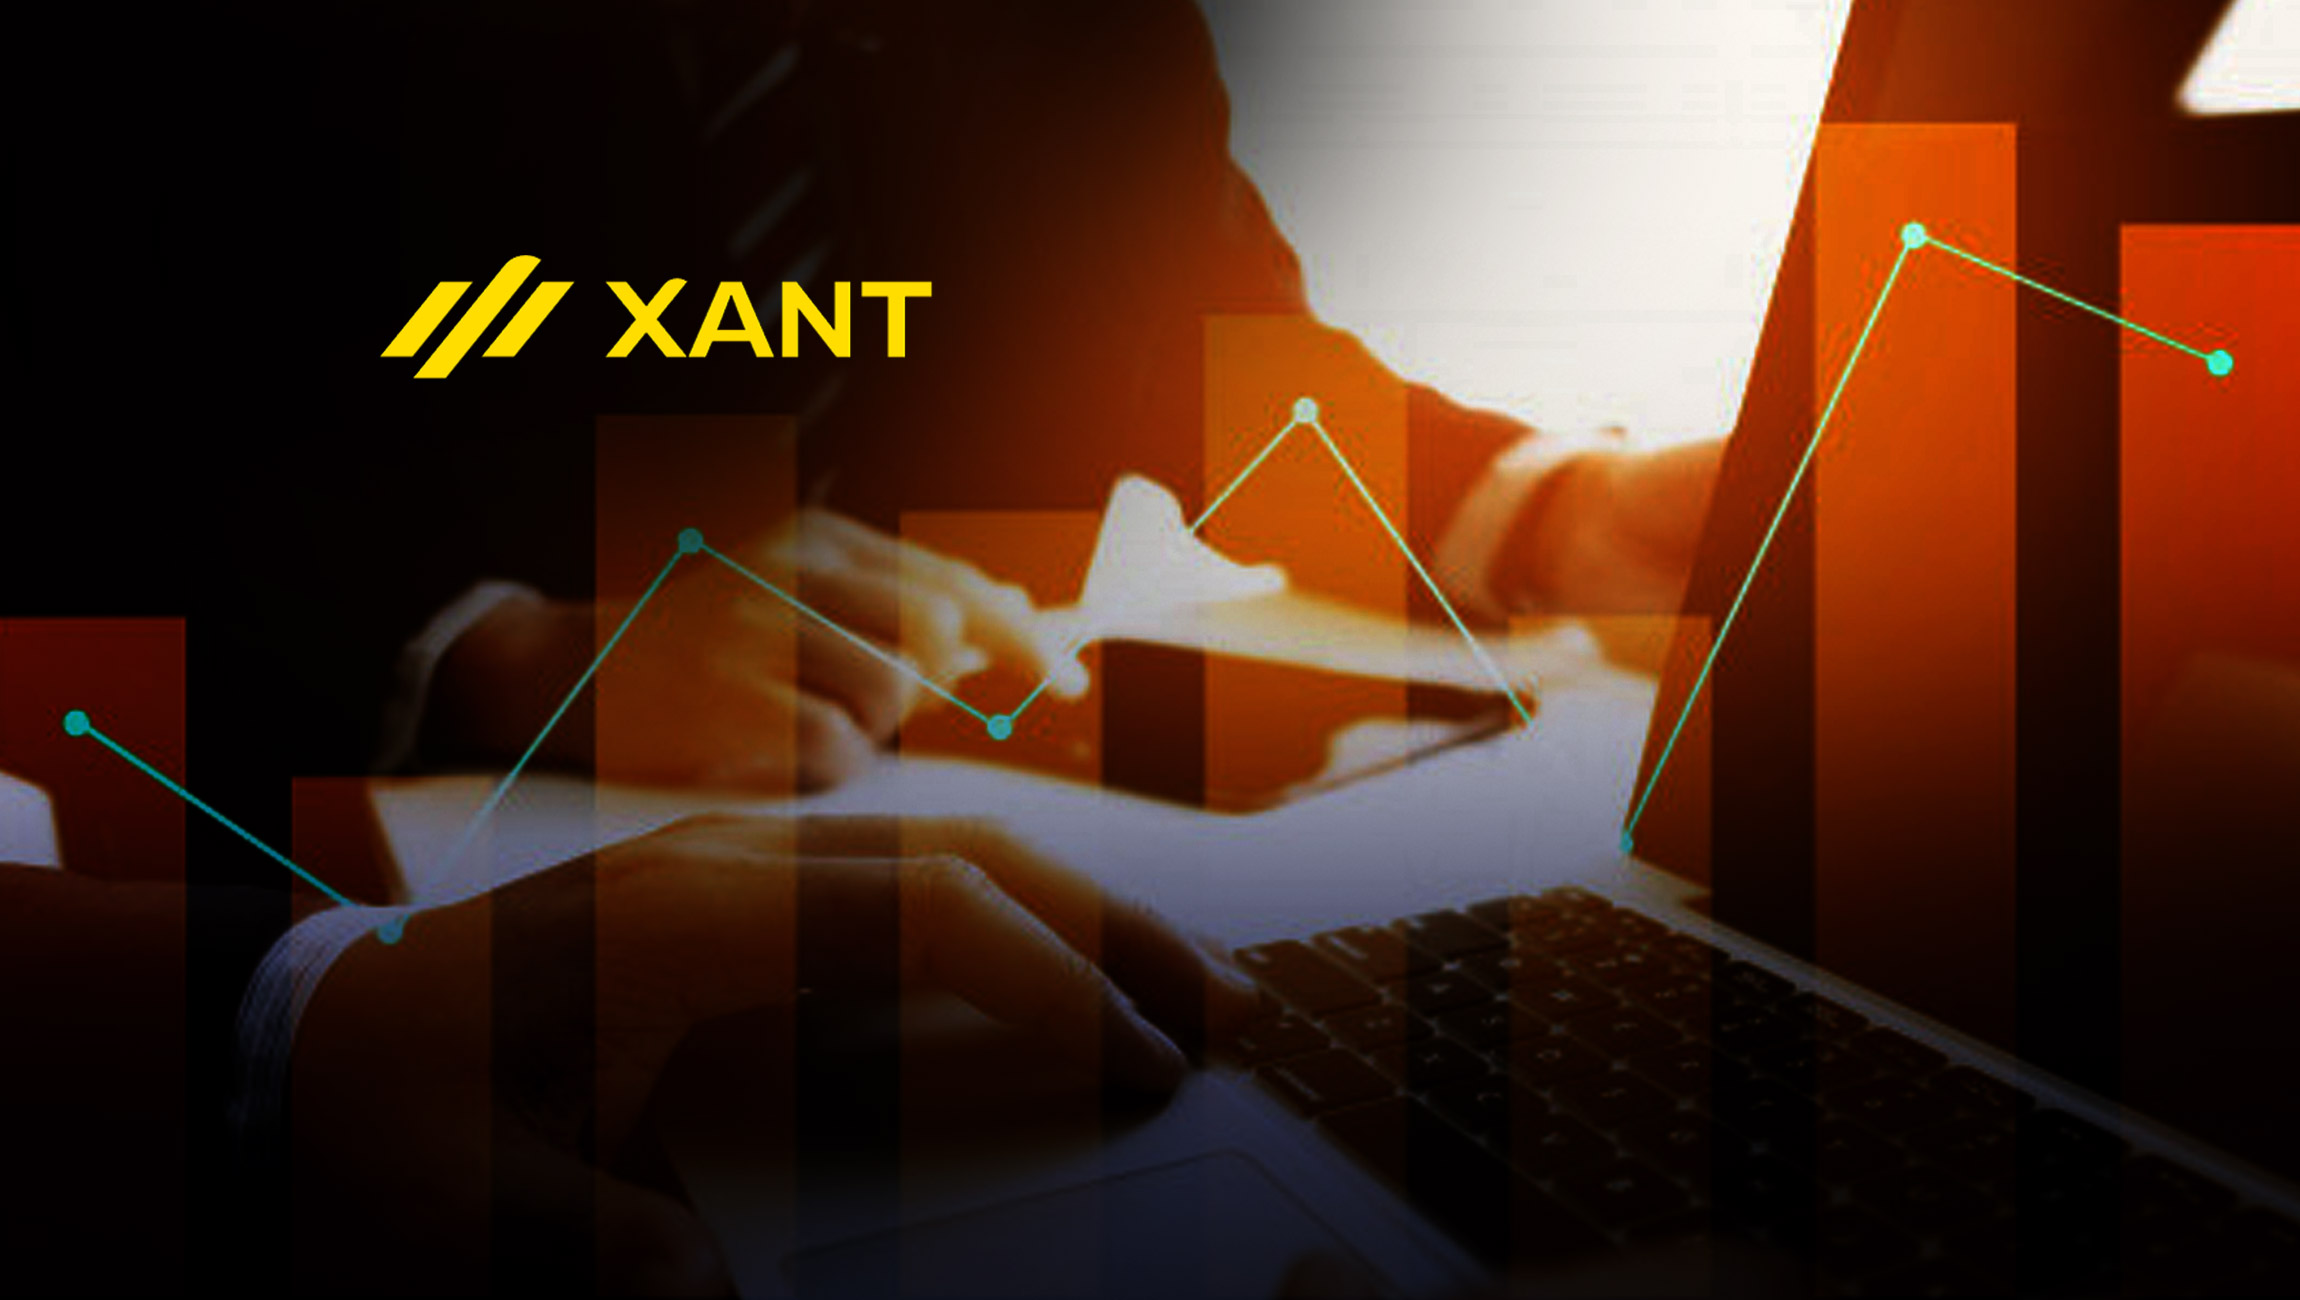 XANT Announces PeopleFinder, a New Buyer IntelligenceFeature That Recommends Additional Contacts in the Buying Group